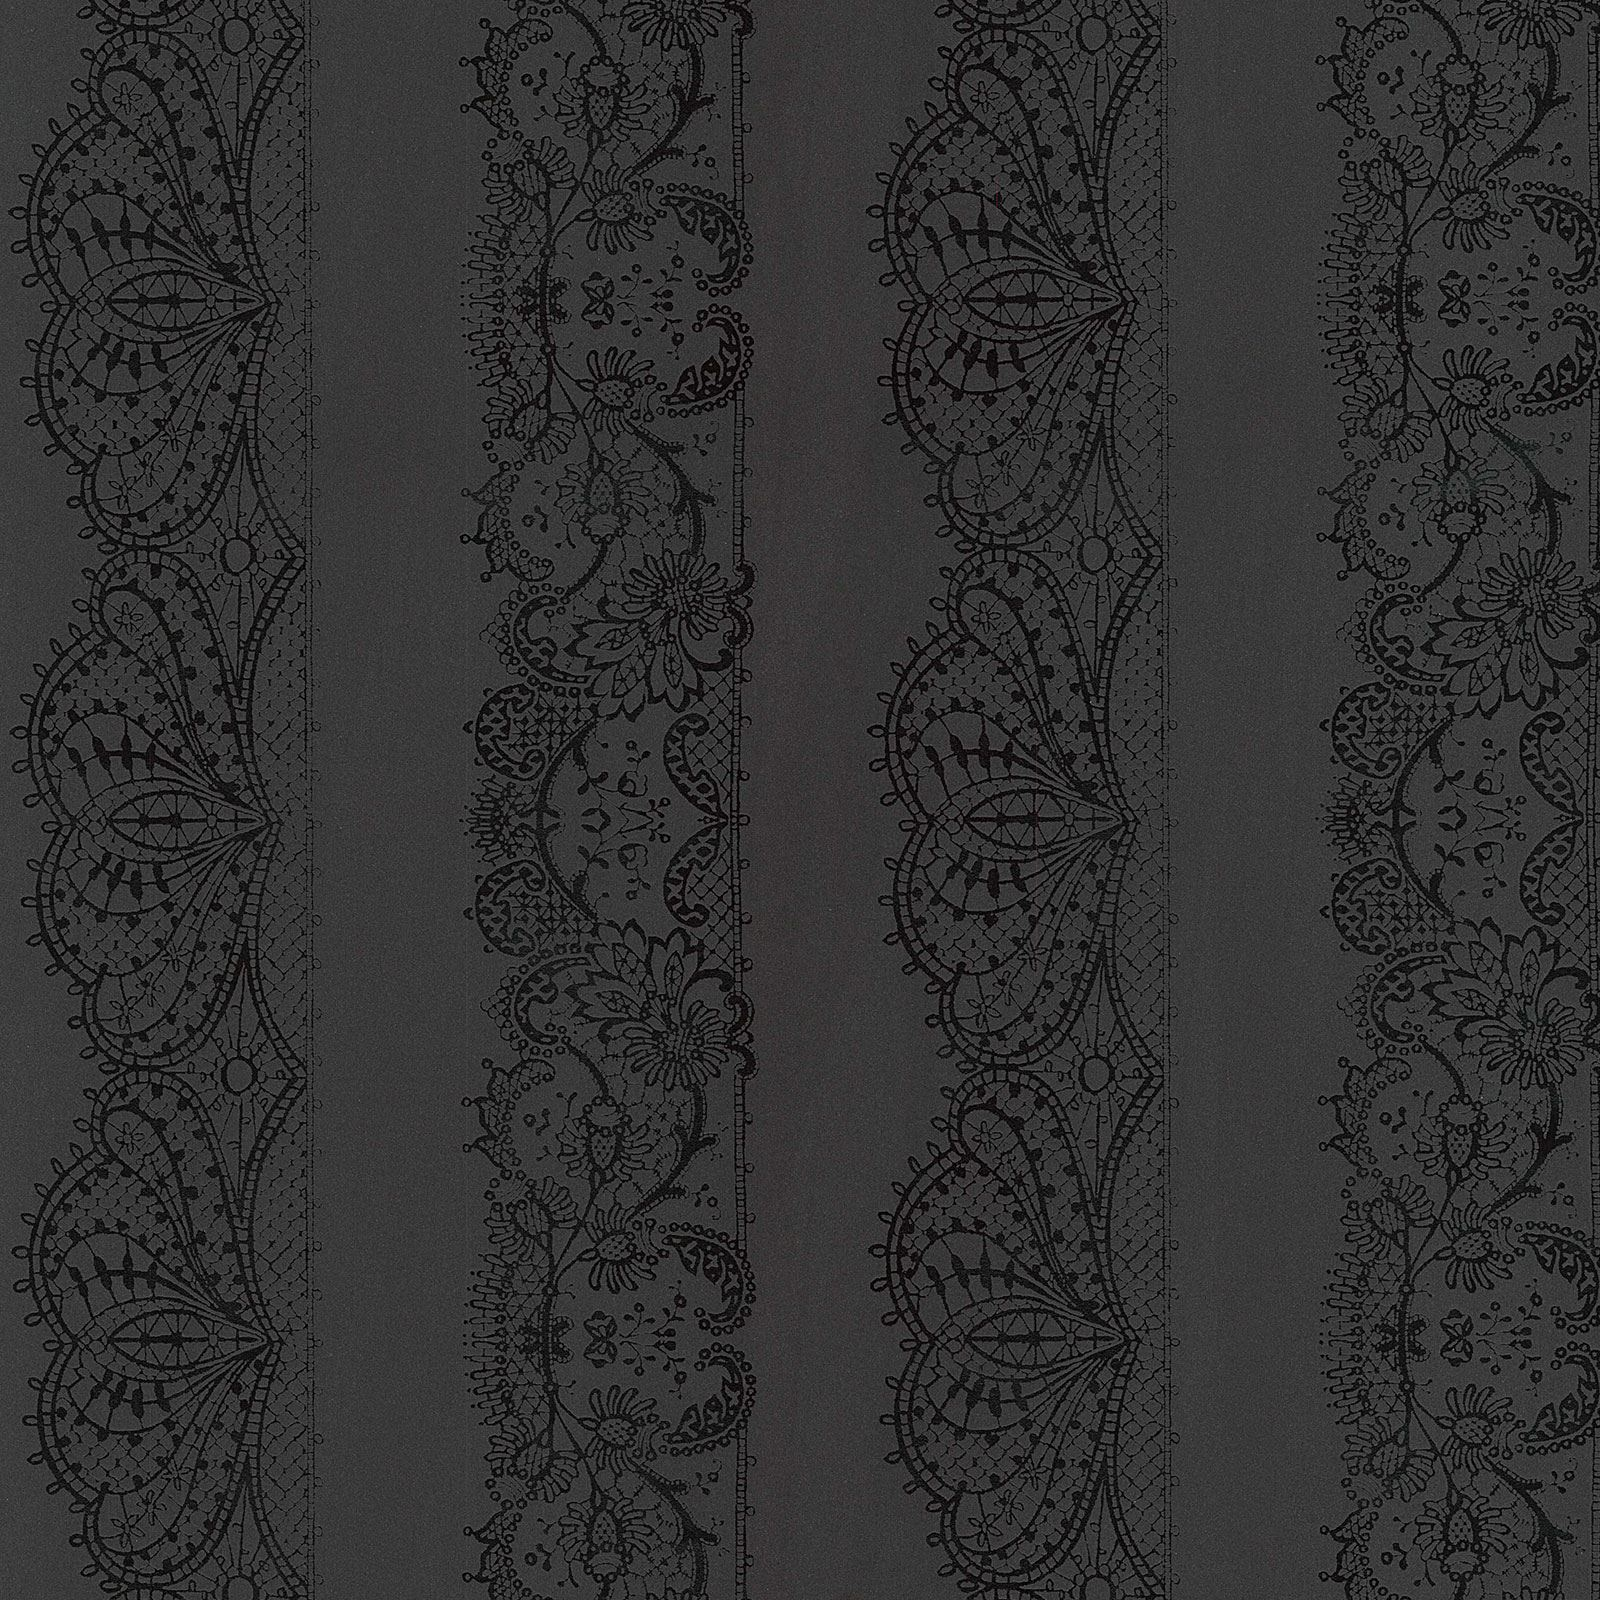 Tablecloths For 8ft Tables Details about CATHERINE LANSFIELD LACE EFFECT WALLPAPER 13379-44 BLACK ...